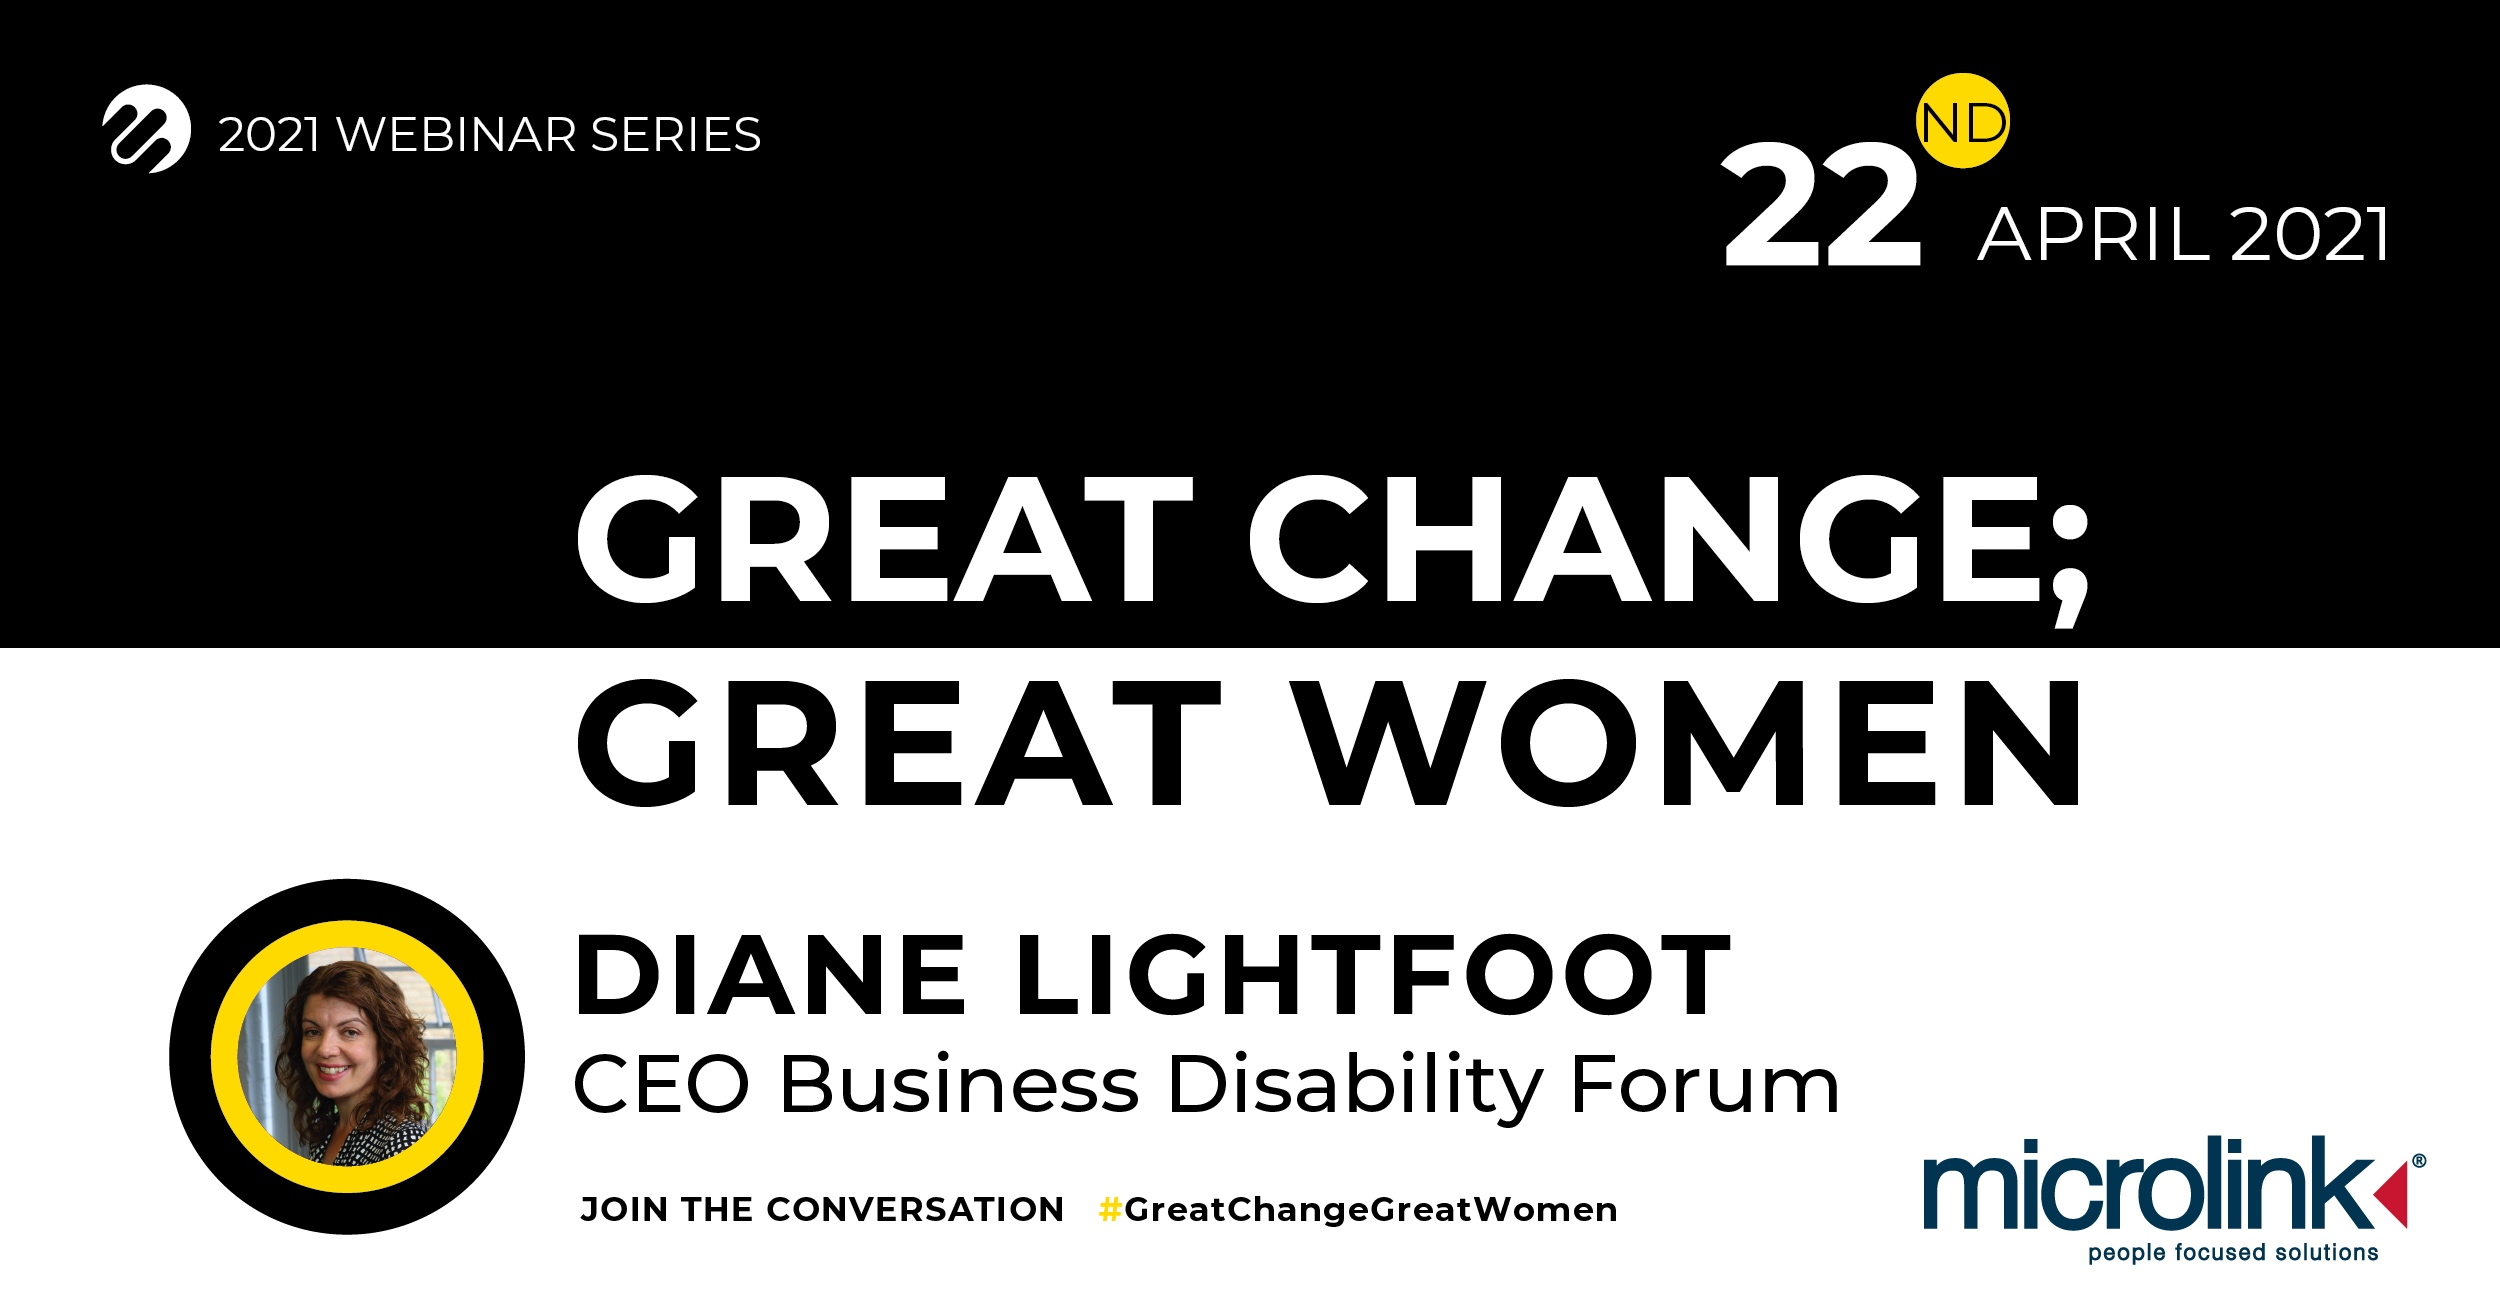 Great Change; Great Women, Microlink event with Diane Lightfoot